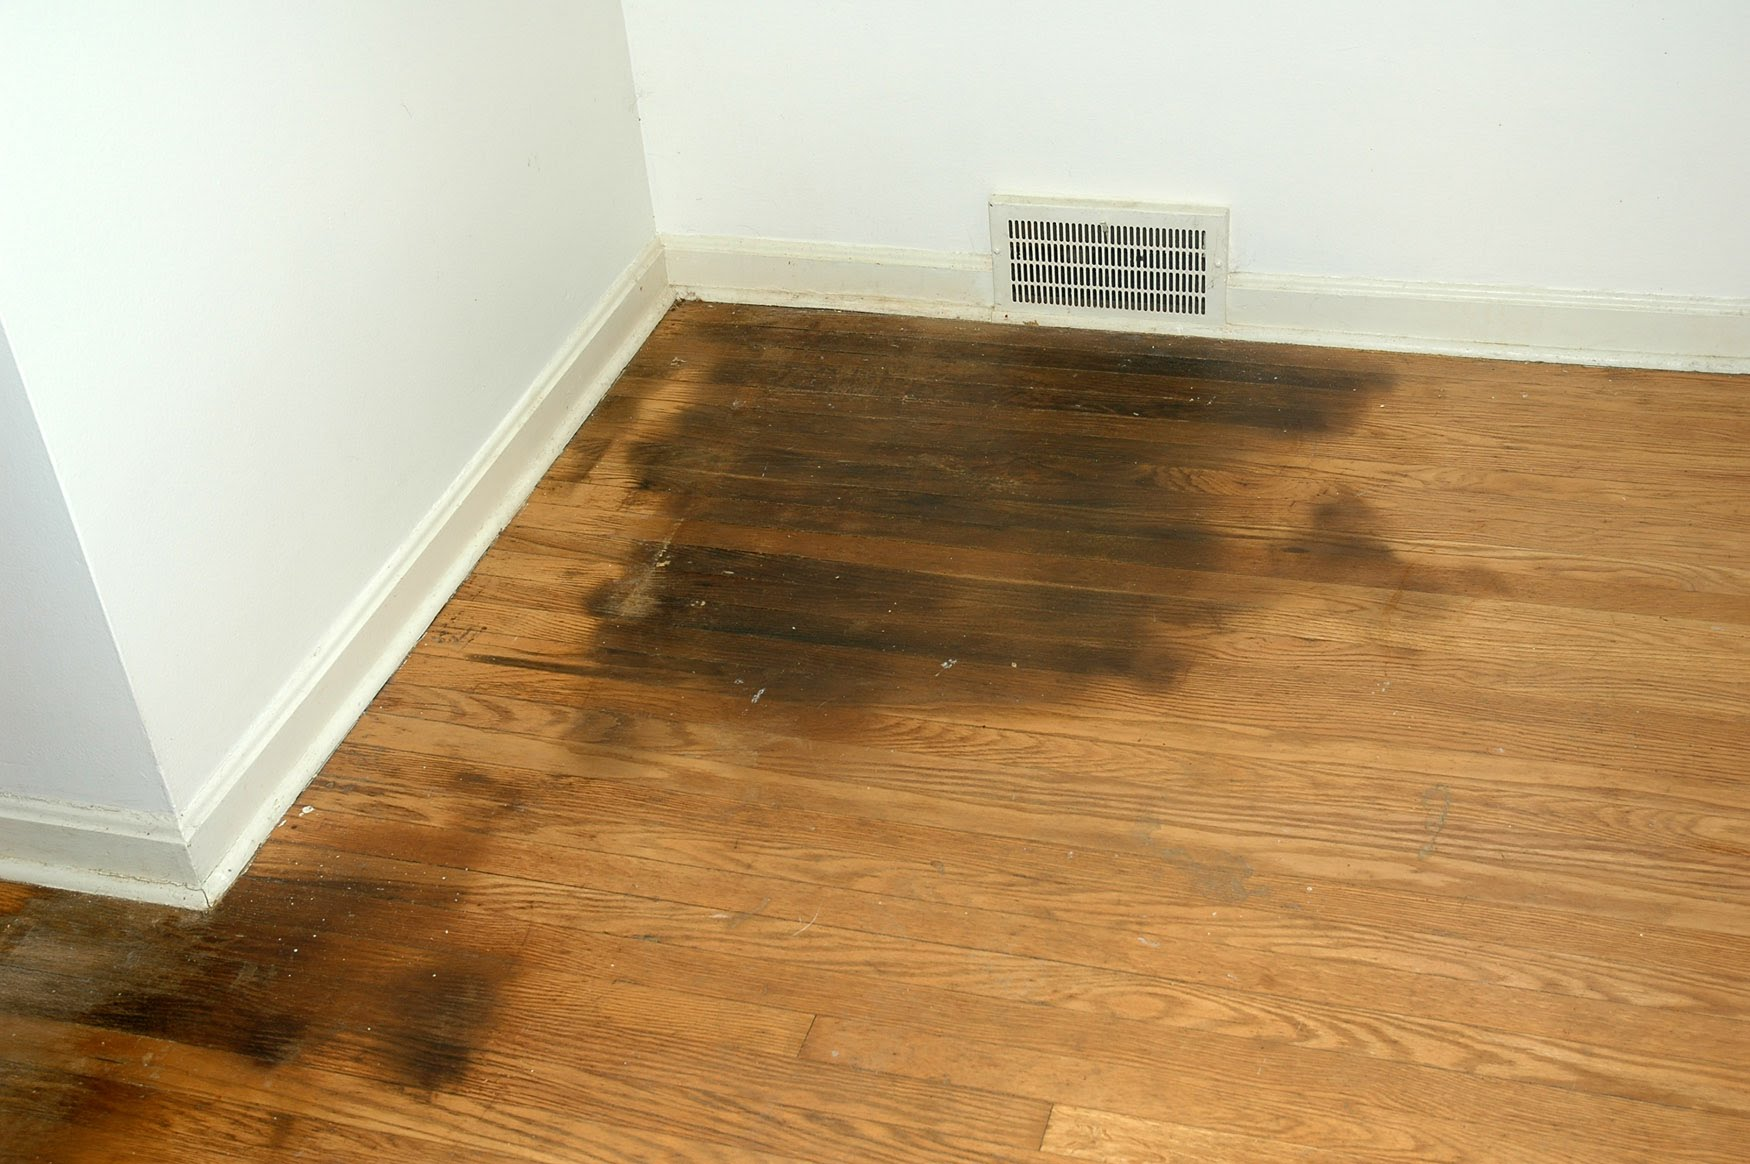 Posts How To Remove Urine From Hardwood Floors